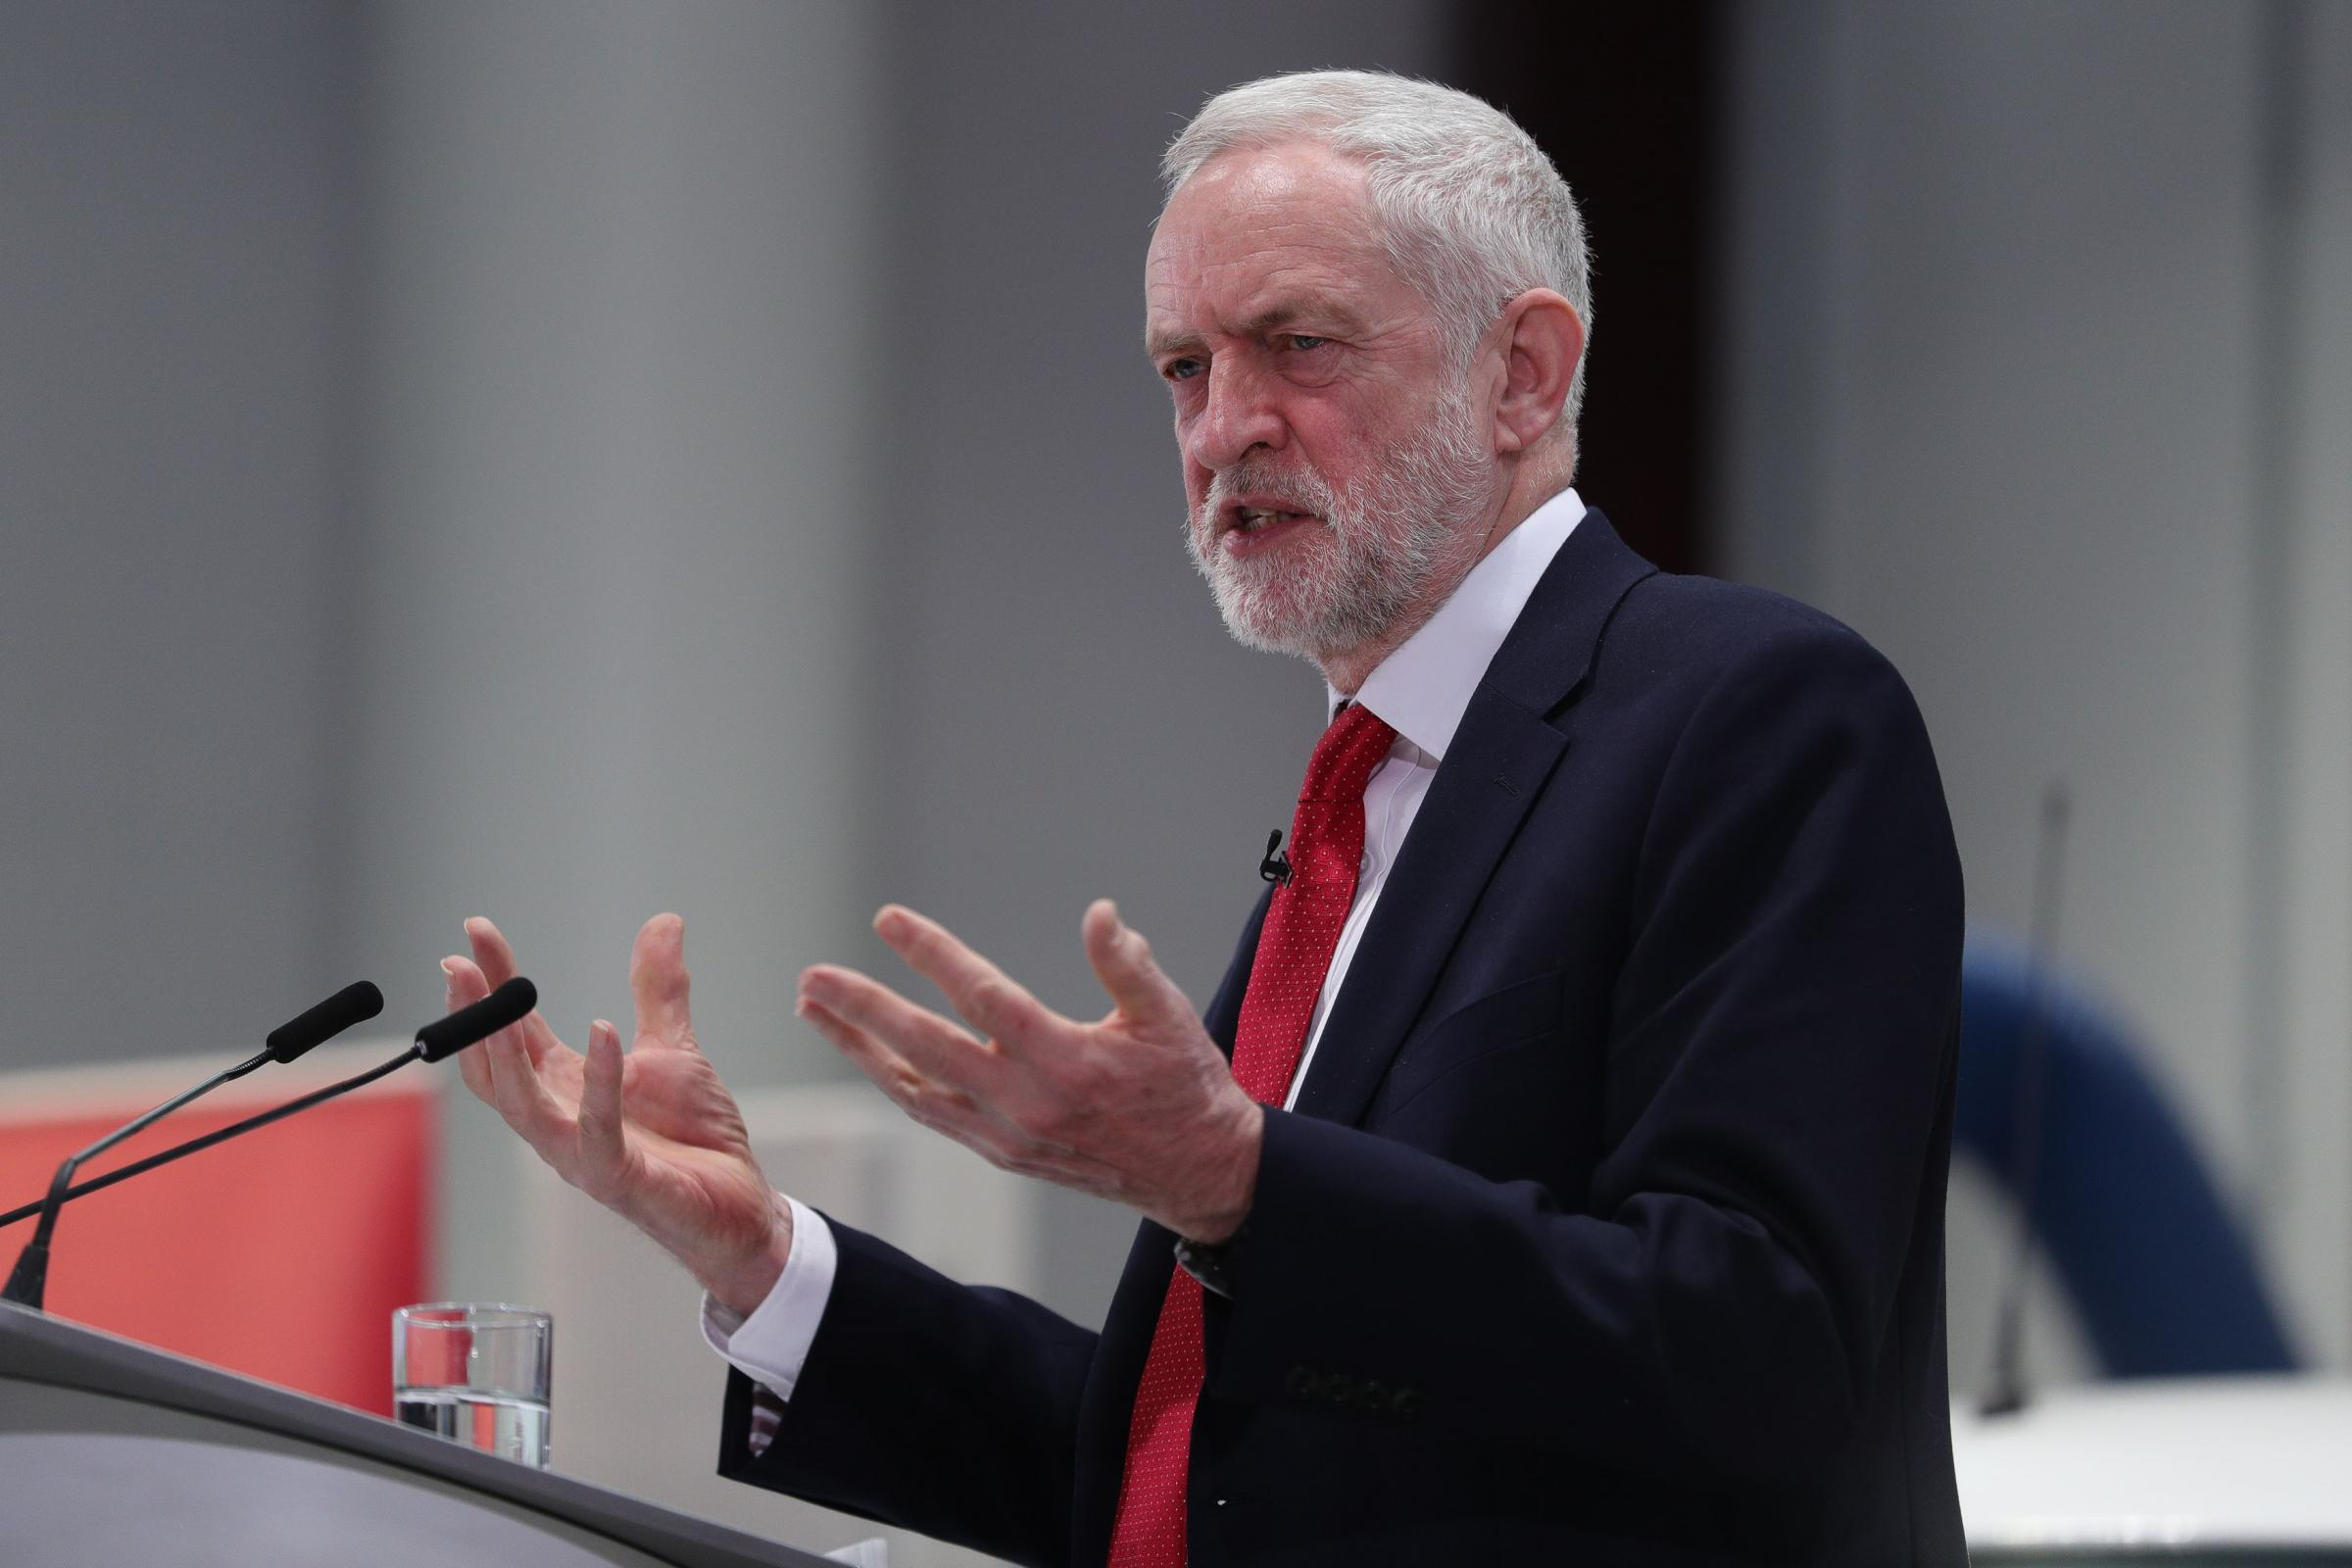 Labour leader Jeremy Corbyn was criticised for his remarks about